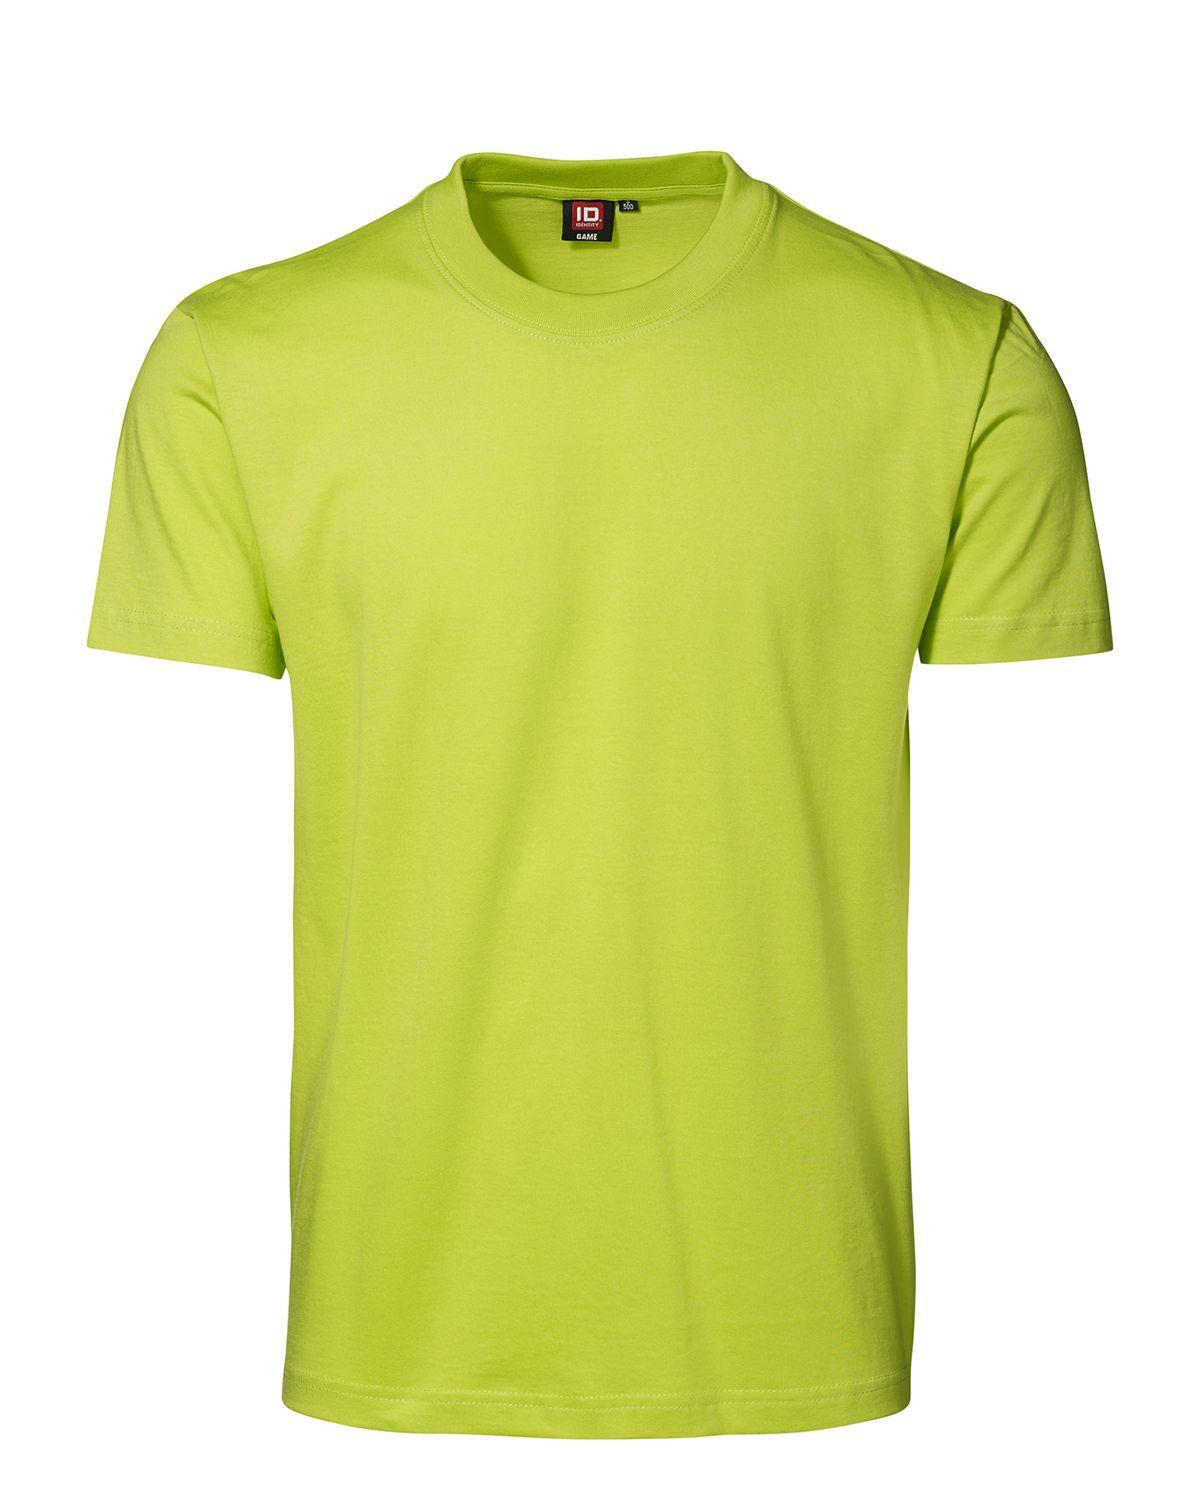 ID GAME T-shirt (Lime, XL)